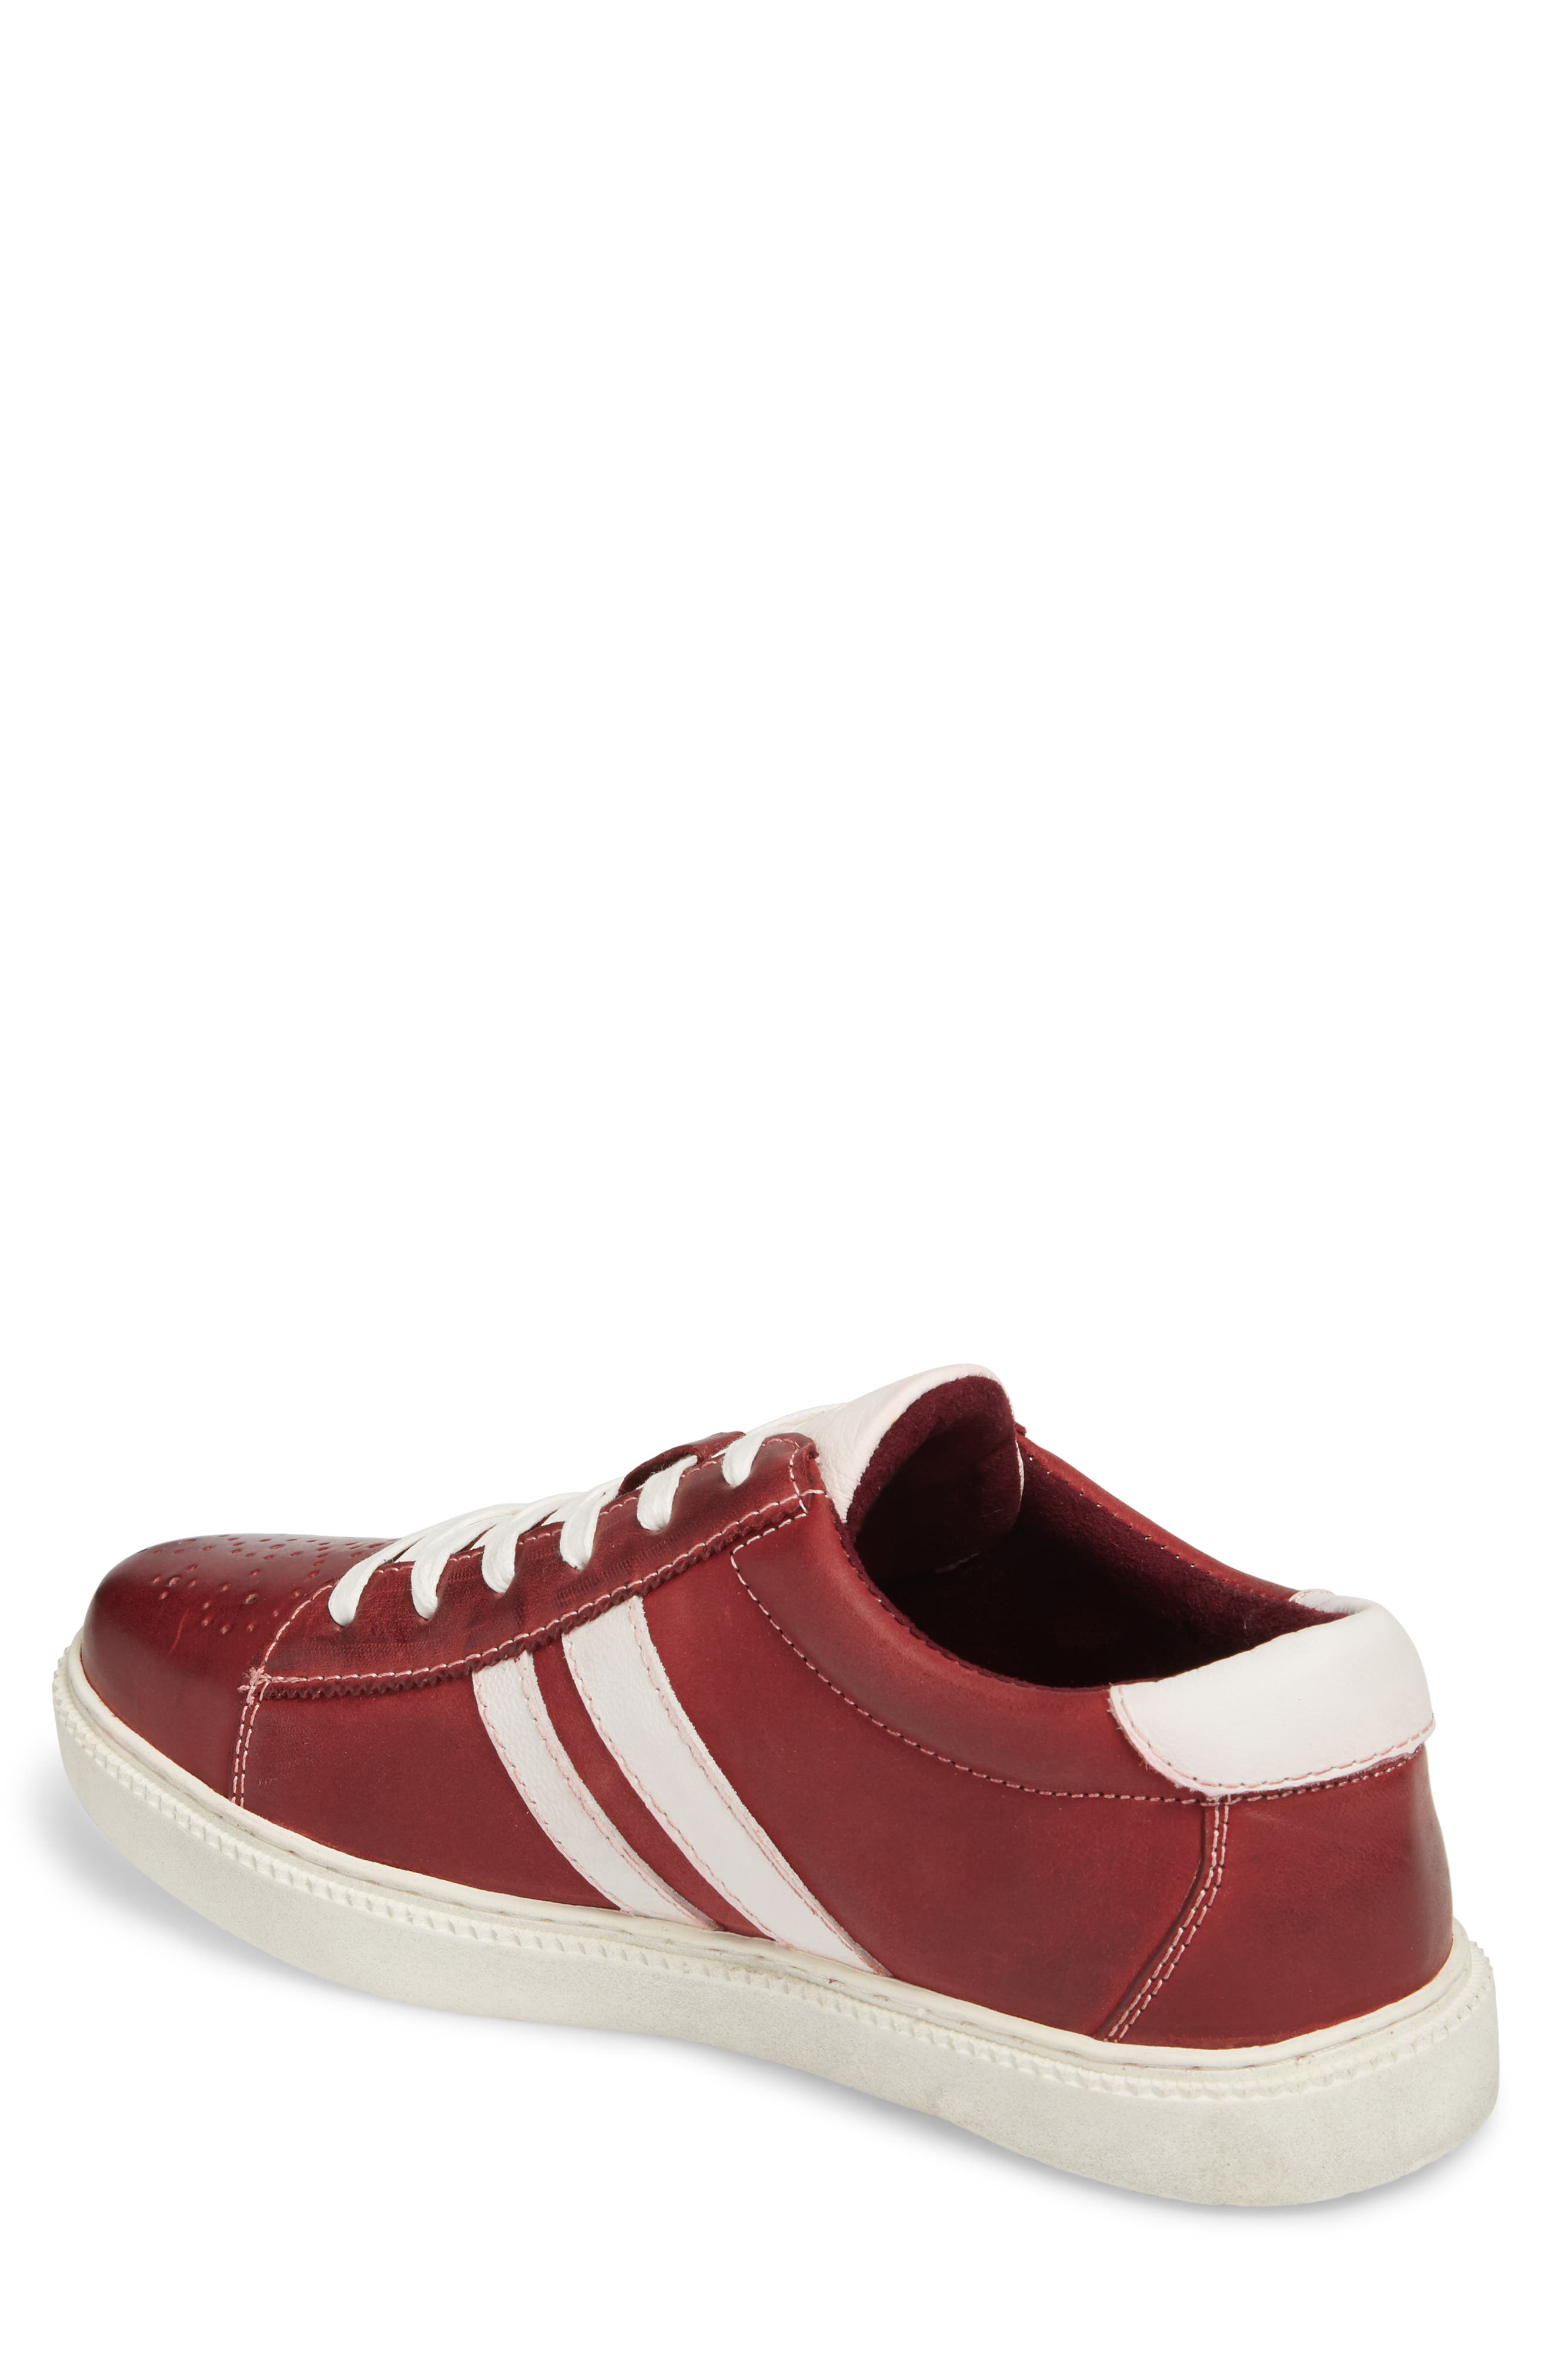 Madox Low Top Sneaker,                             Alternate thumbnail 2, color,                             RED